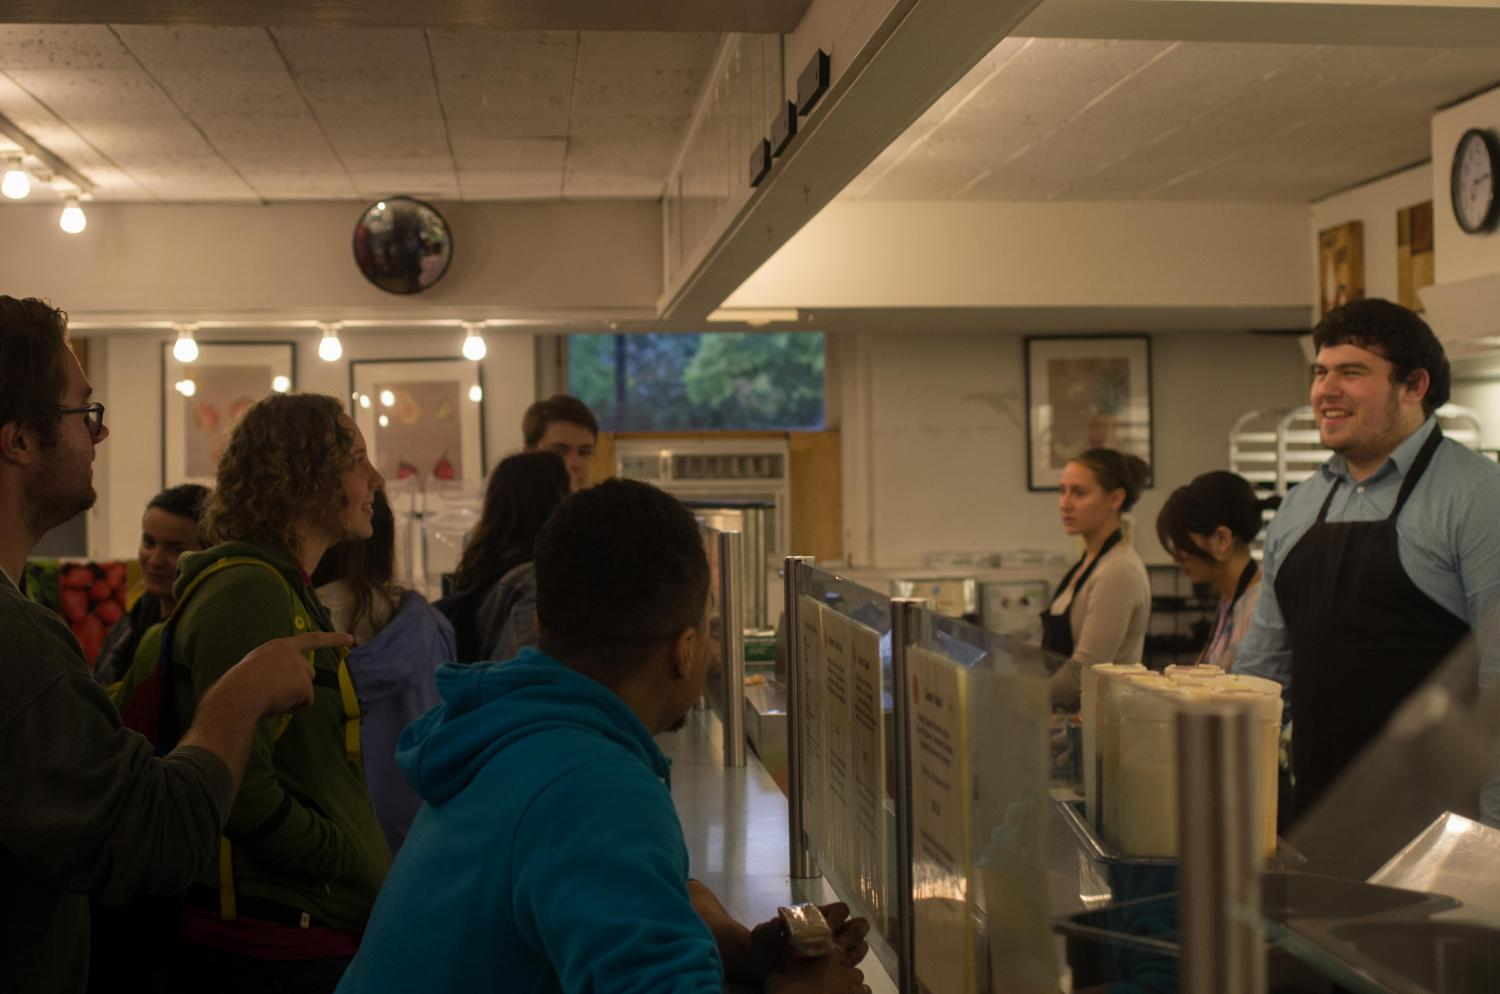 Students stand in a line at DeCafé, where they can now use meal swipes to purchase food.